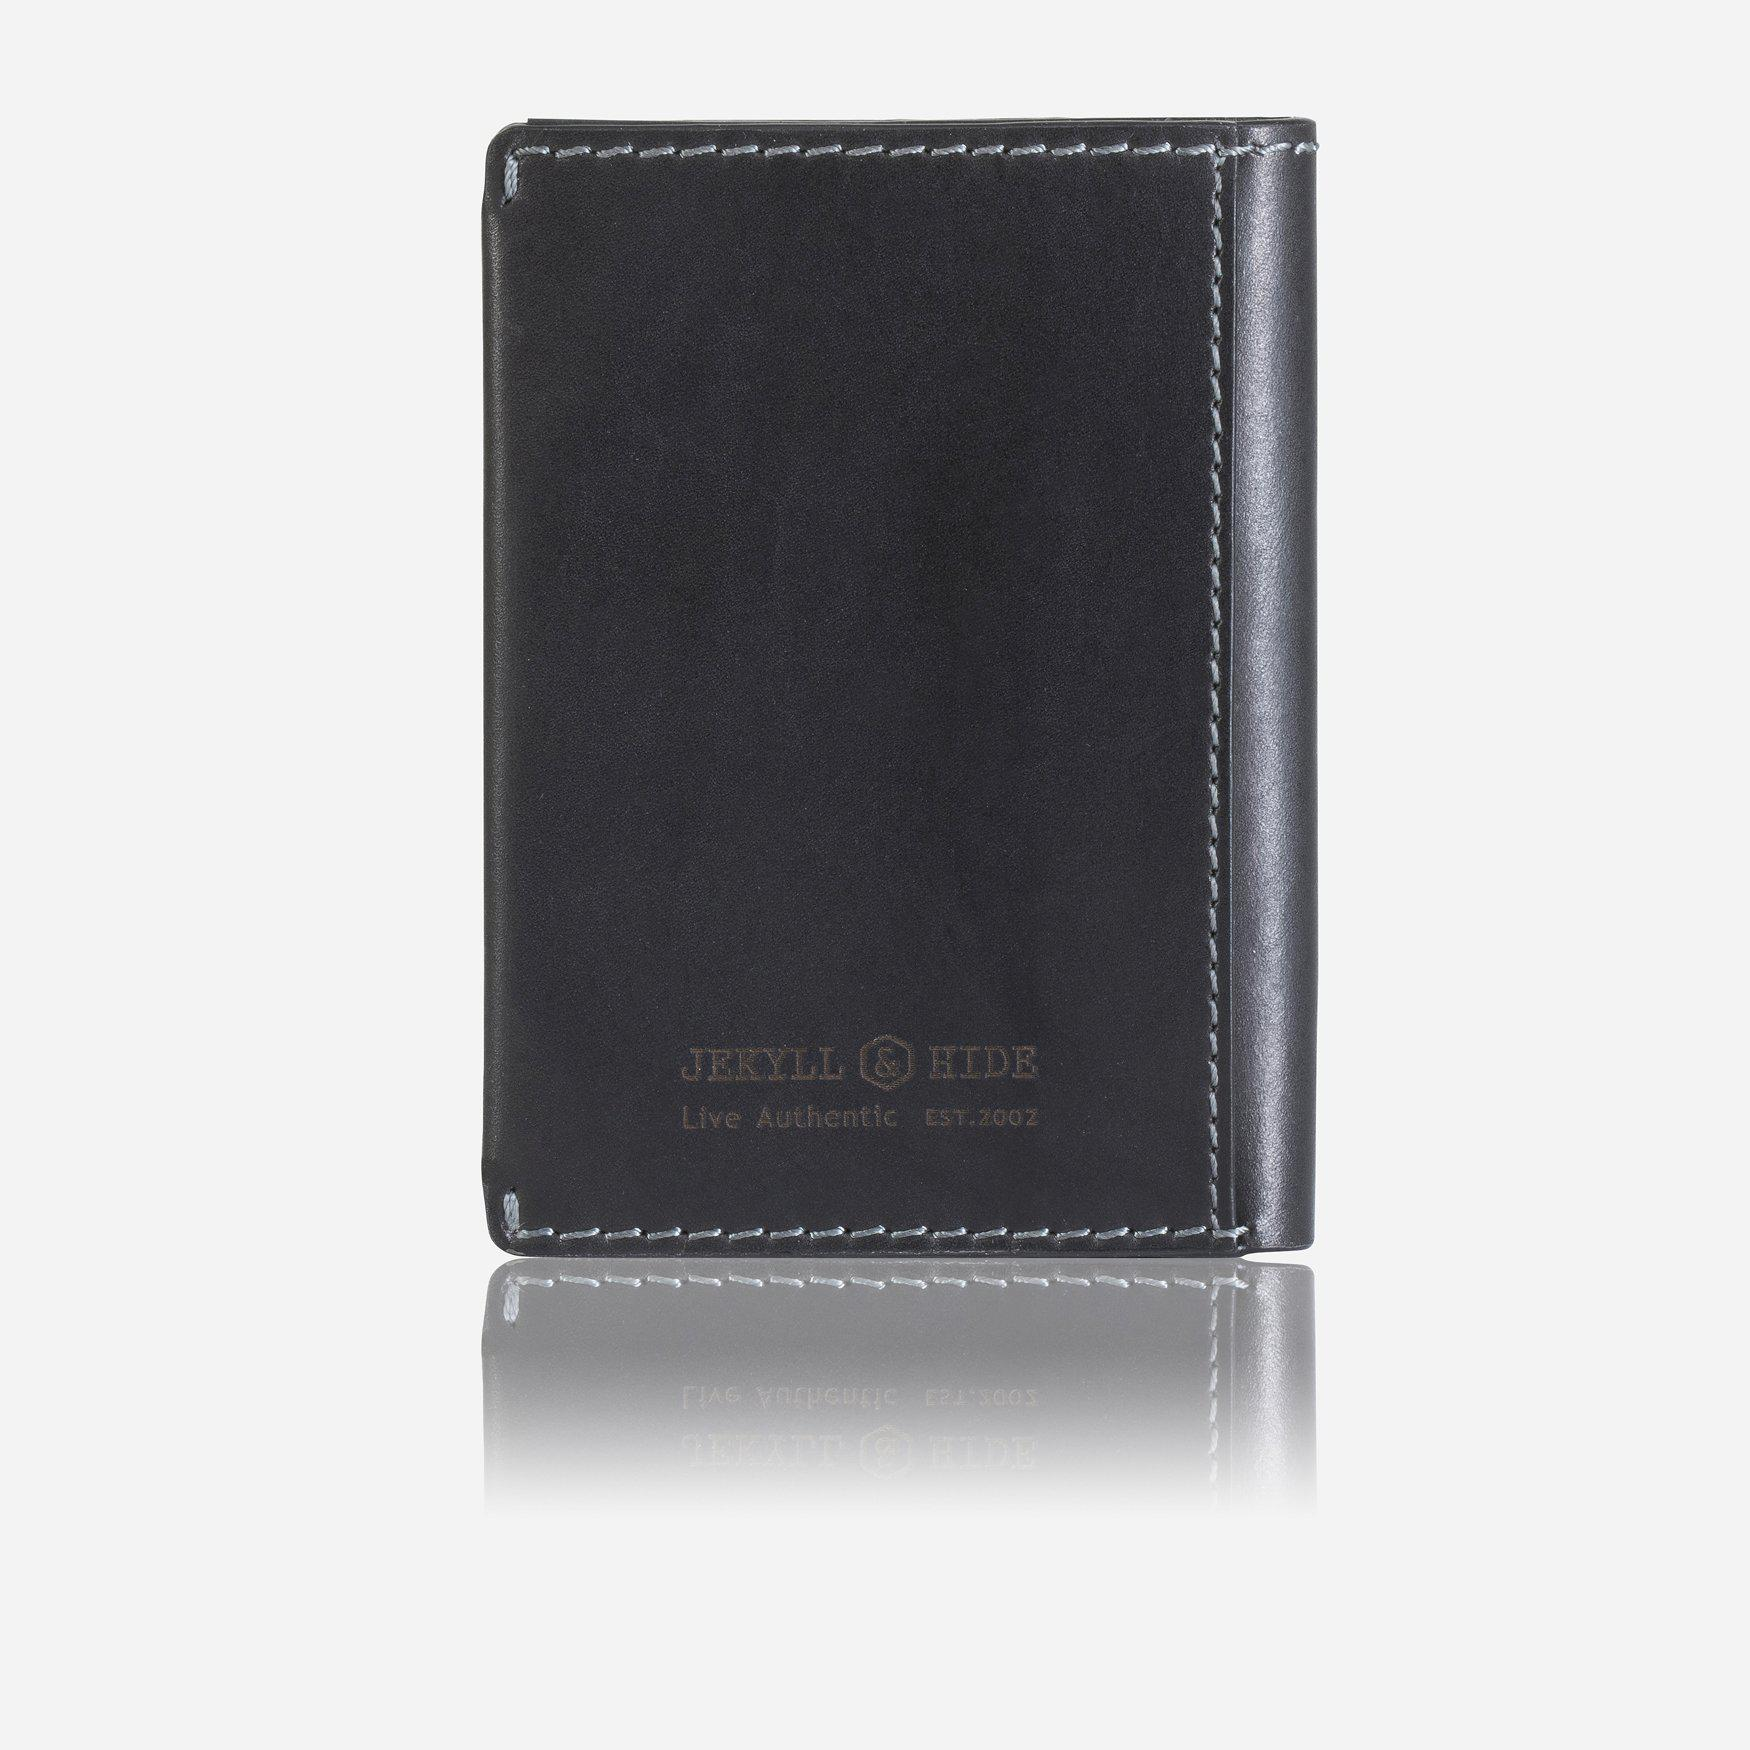 Wallet - Large Billfold Wallet For Notes